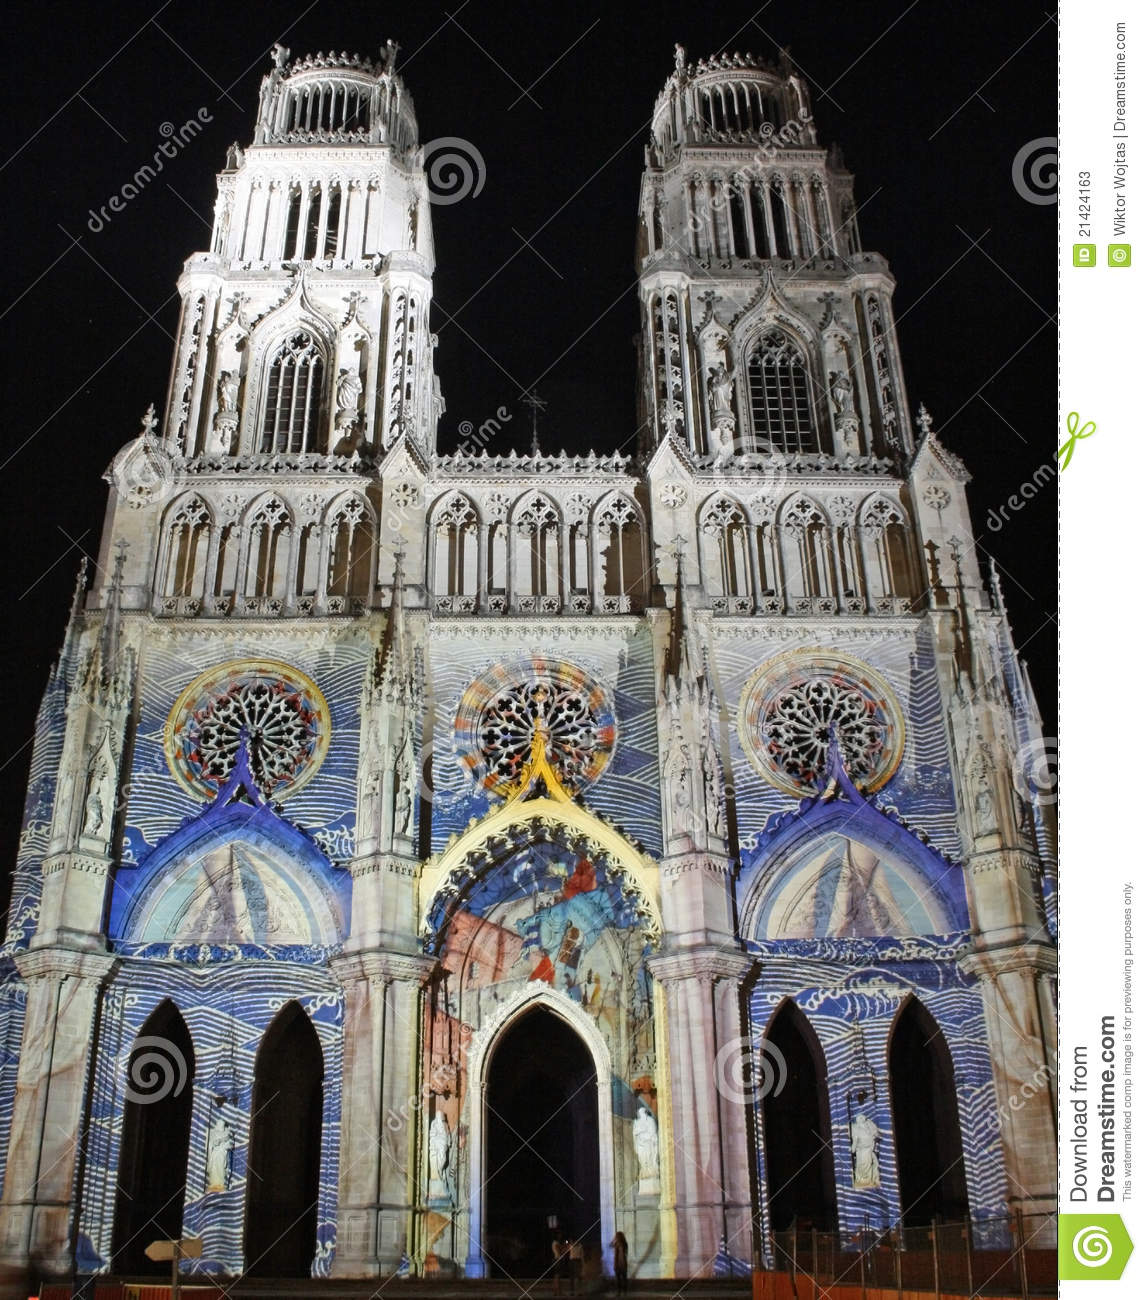 cathedral in orleans france at night stock image image 21424163. Black Bedroom Furniture Sets. Home Design Ideas